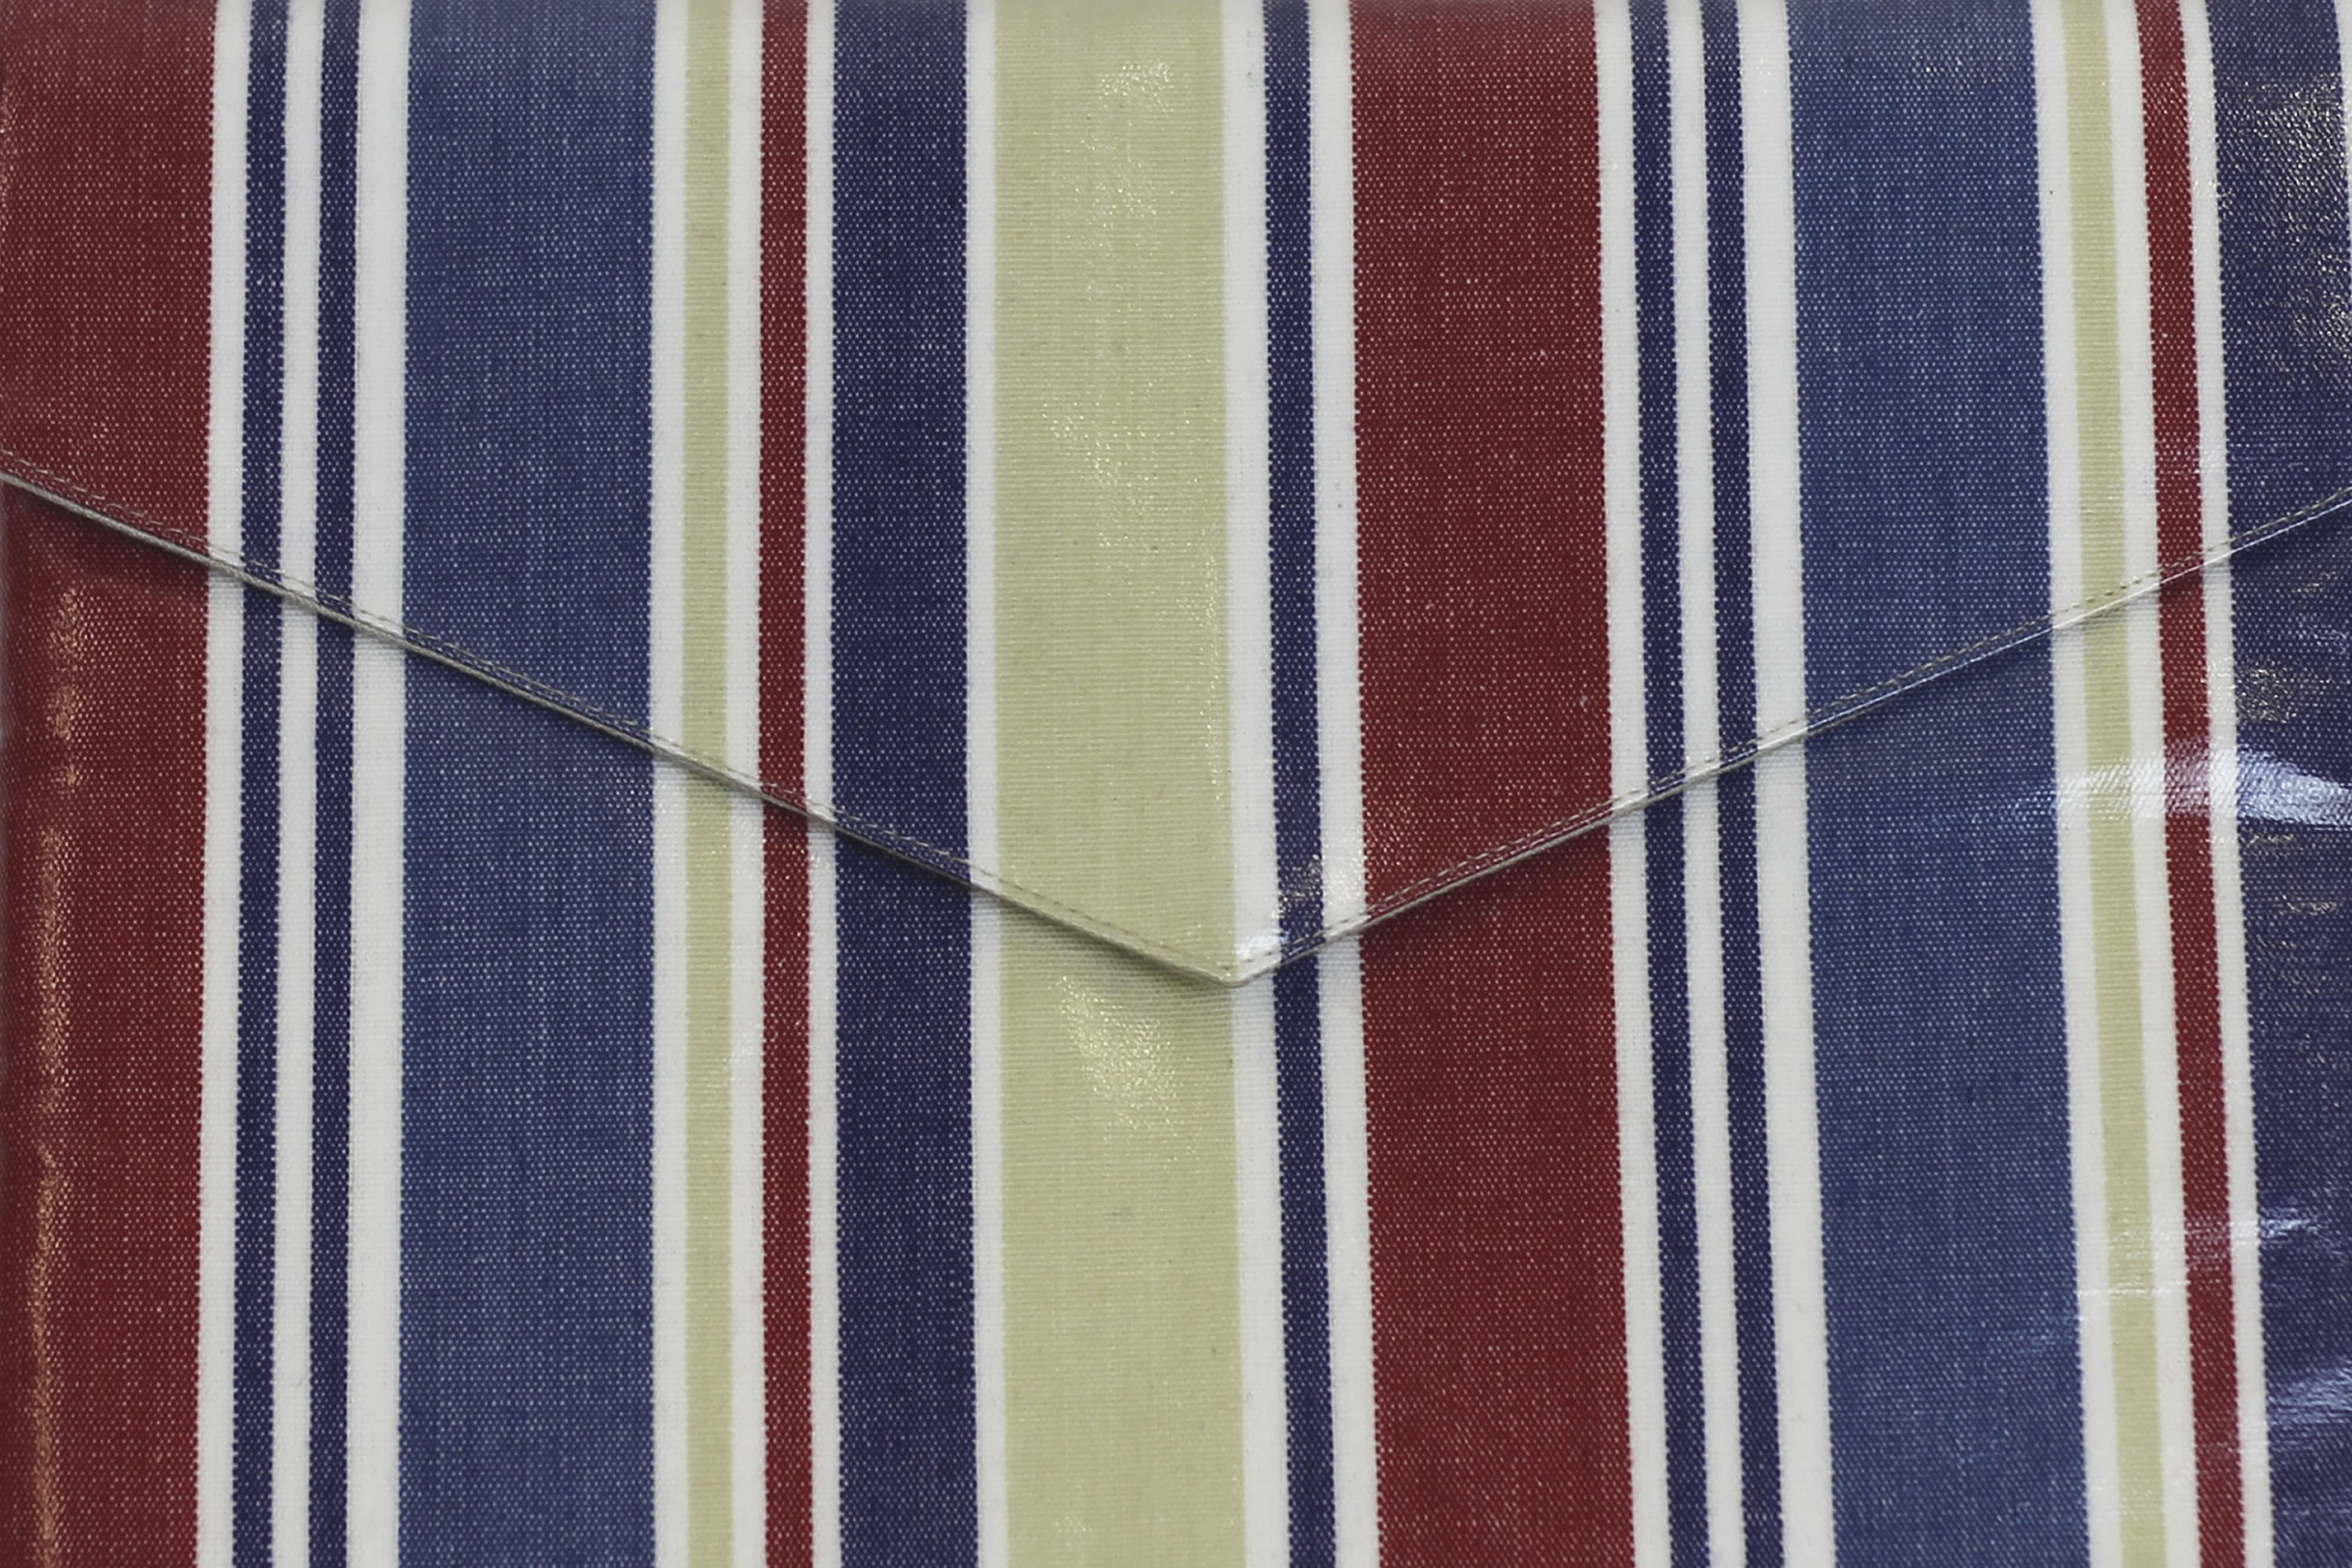 Striped Fabrics Blue, Red and Beige Stripes | Striped Curtain Fabrics | Upholstery Fabrics